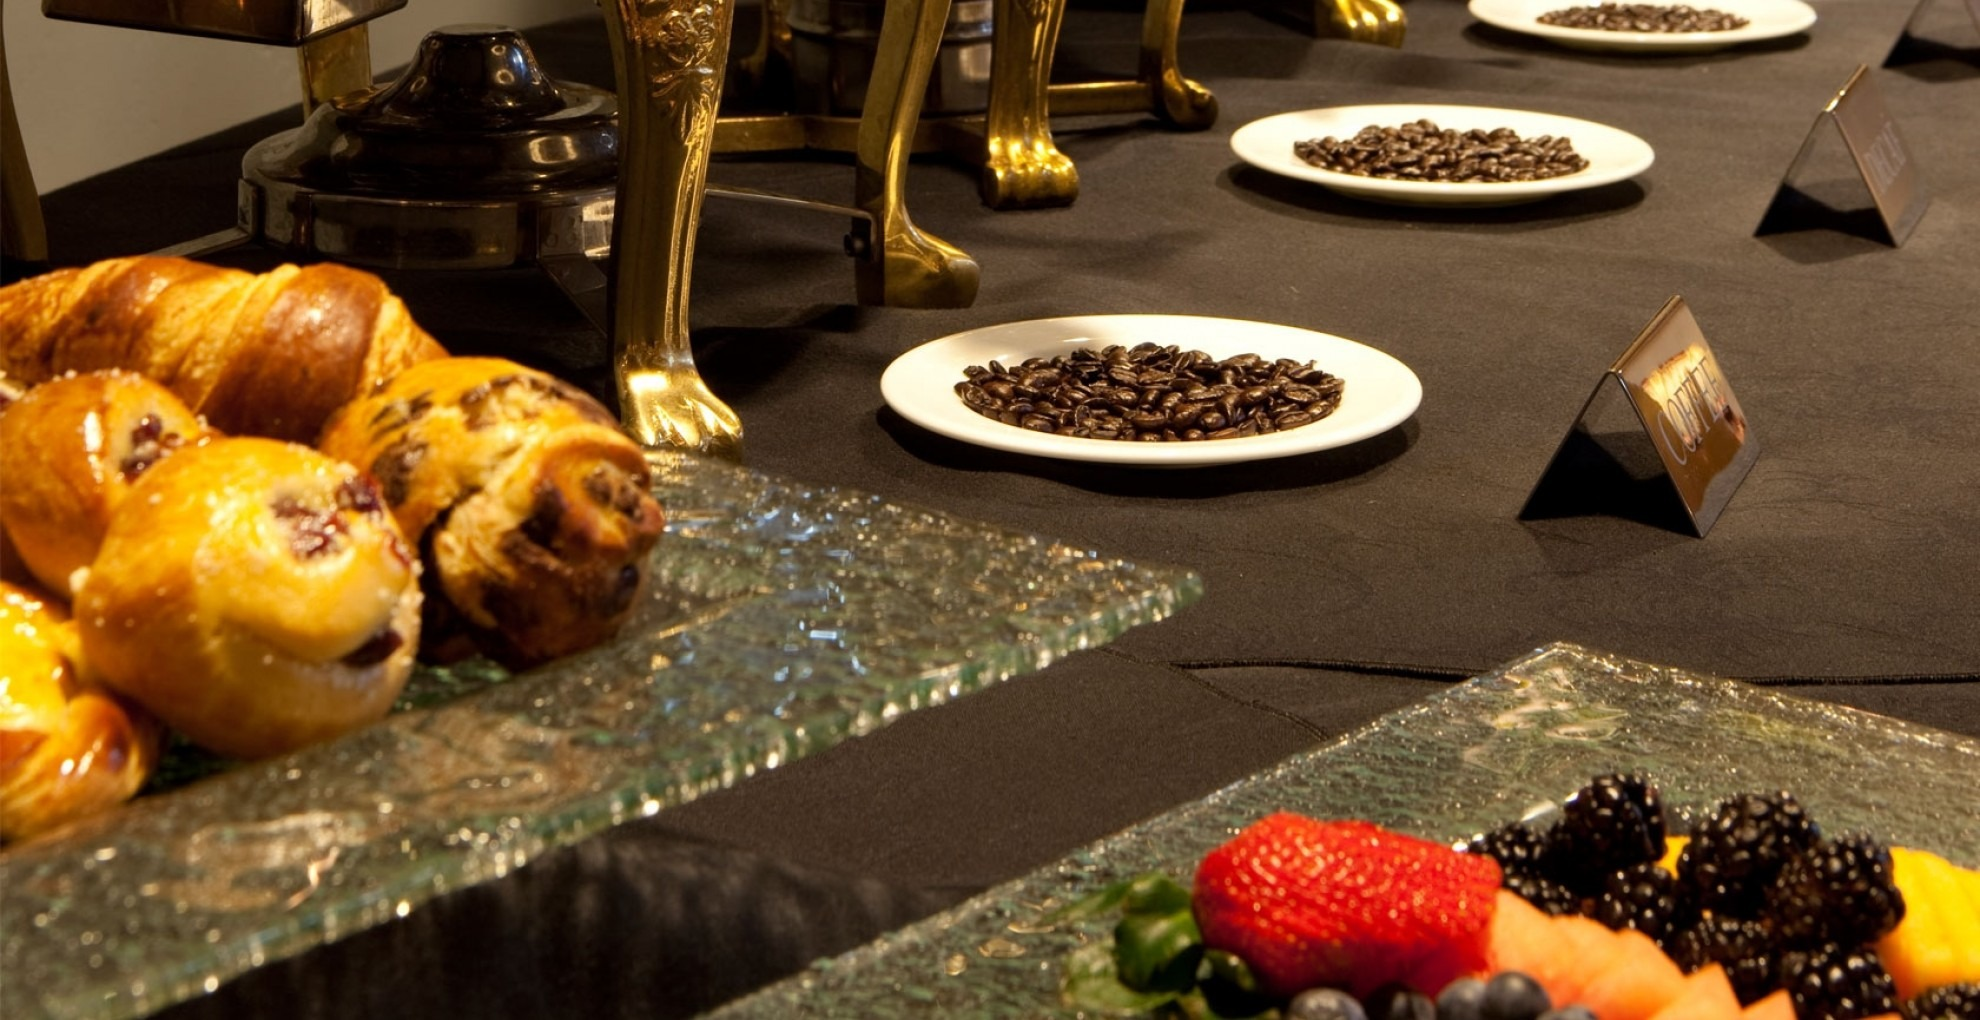 Banquet Menus To Suit All Needs